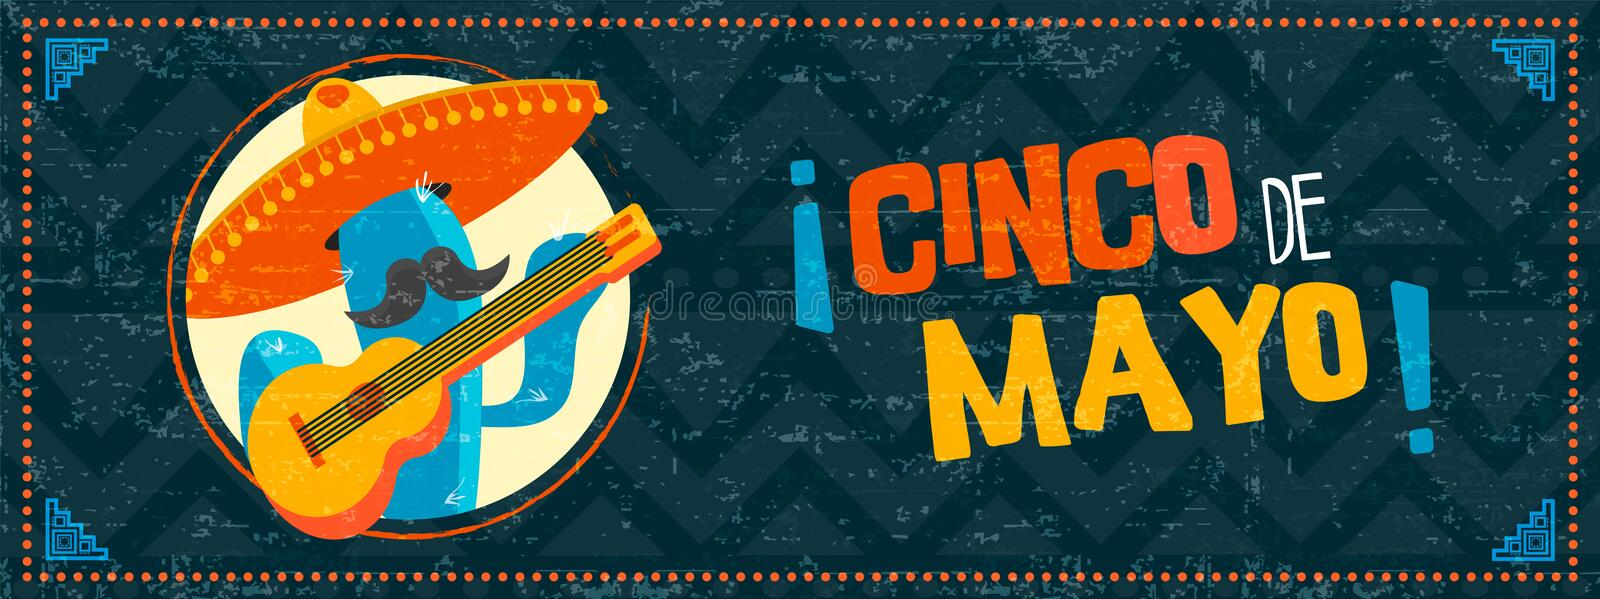 Happy cinco de mayo cactus mariachi web banner vector illustration